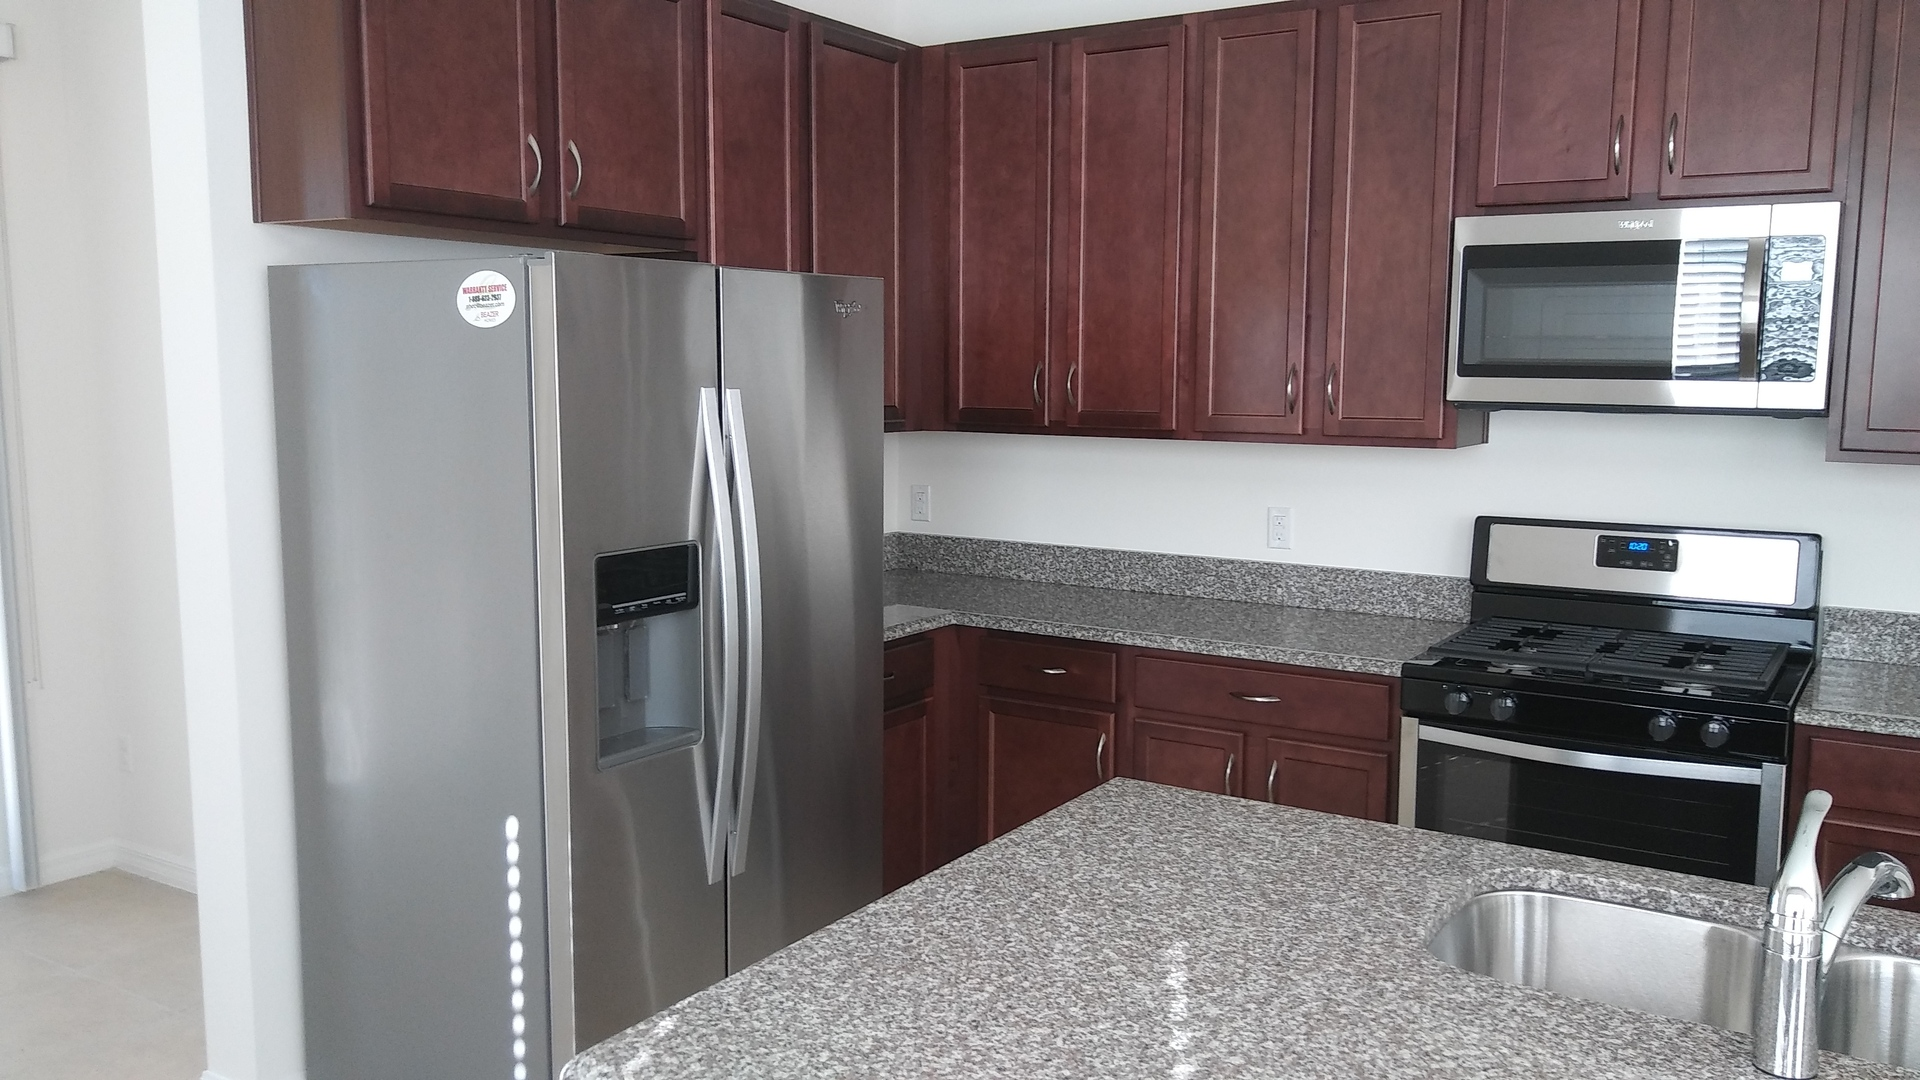 8062 wood sage dr winter garden fl 34787 rental listing real